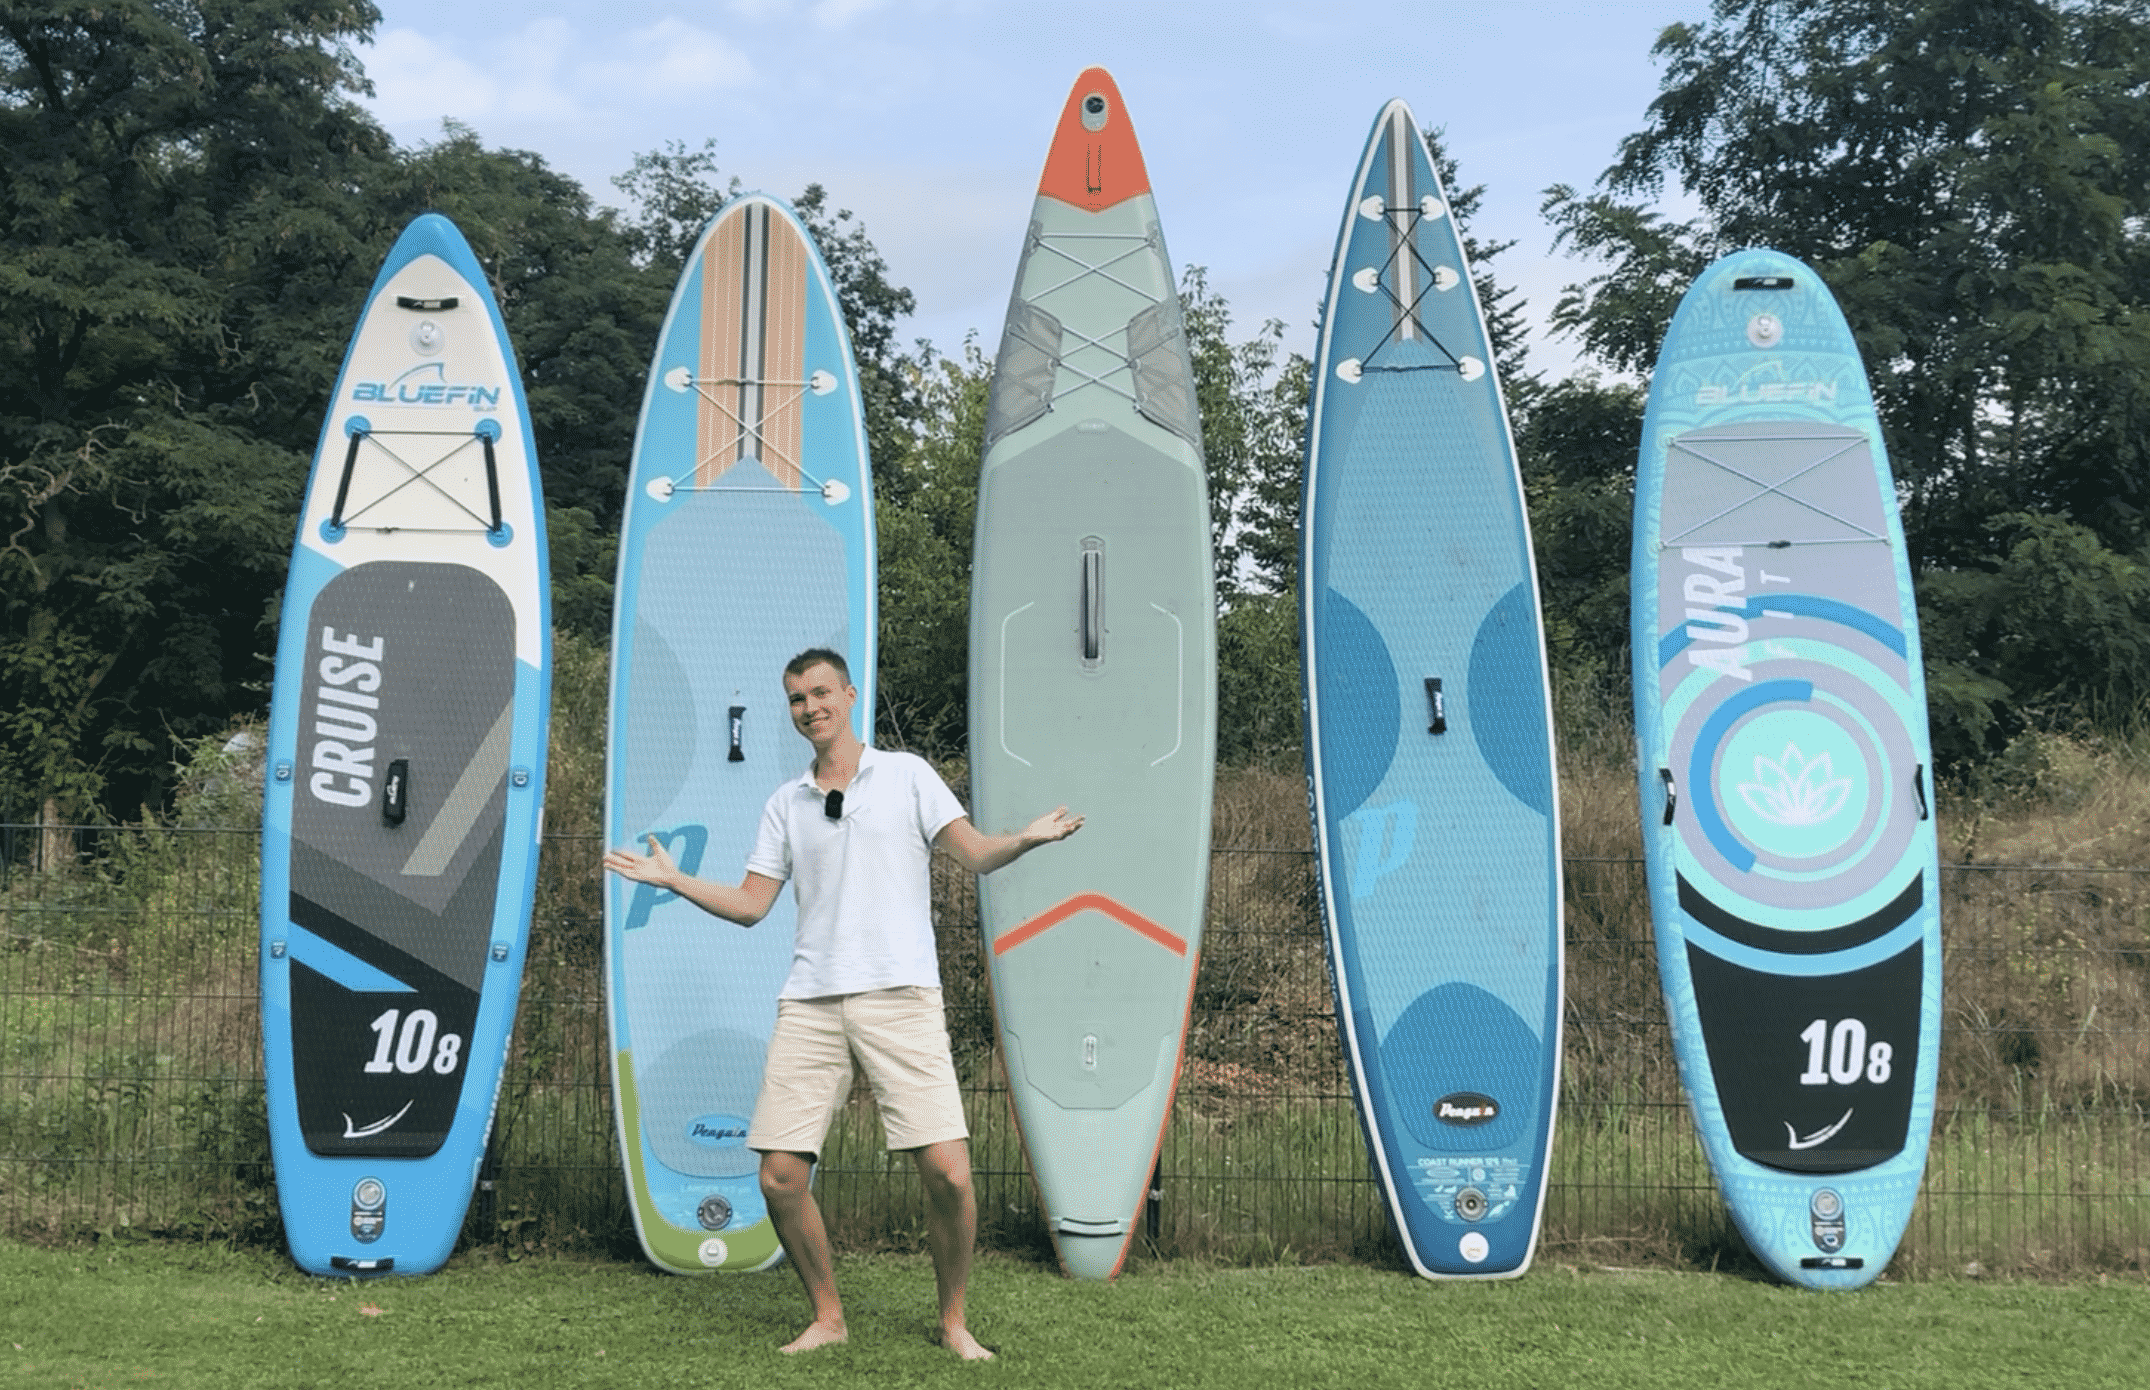 Max mit 5 SUP Boards